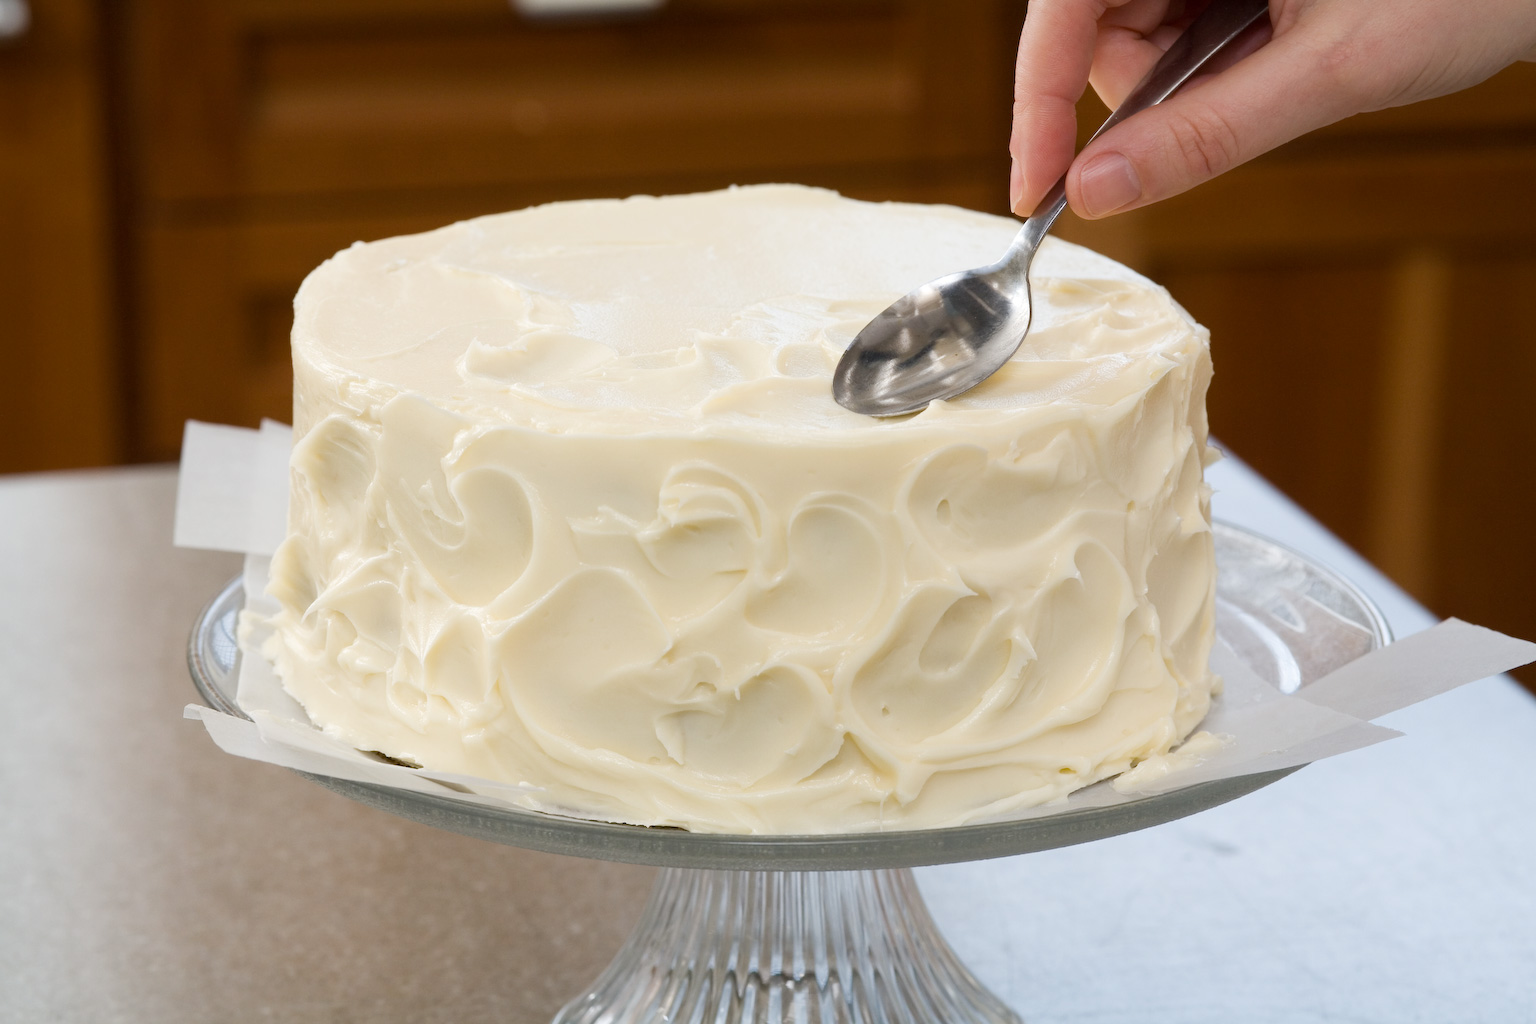 Easy bake games secrets to decorating layer cakes for Decoration layer cake